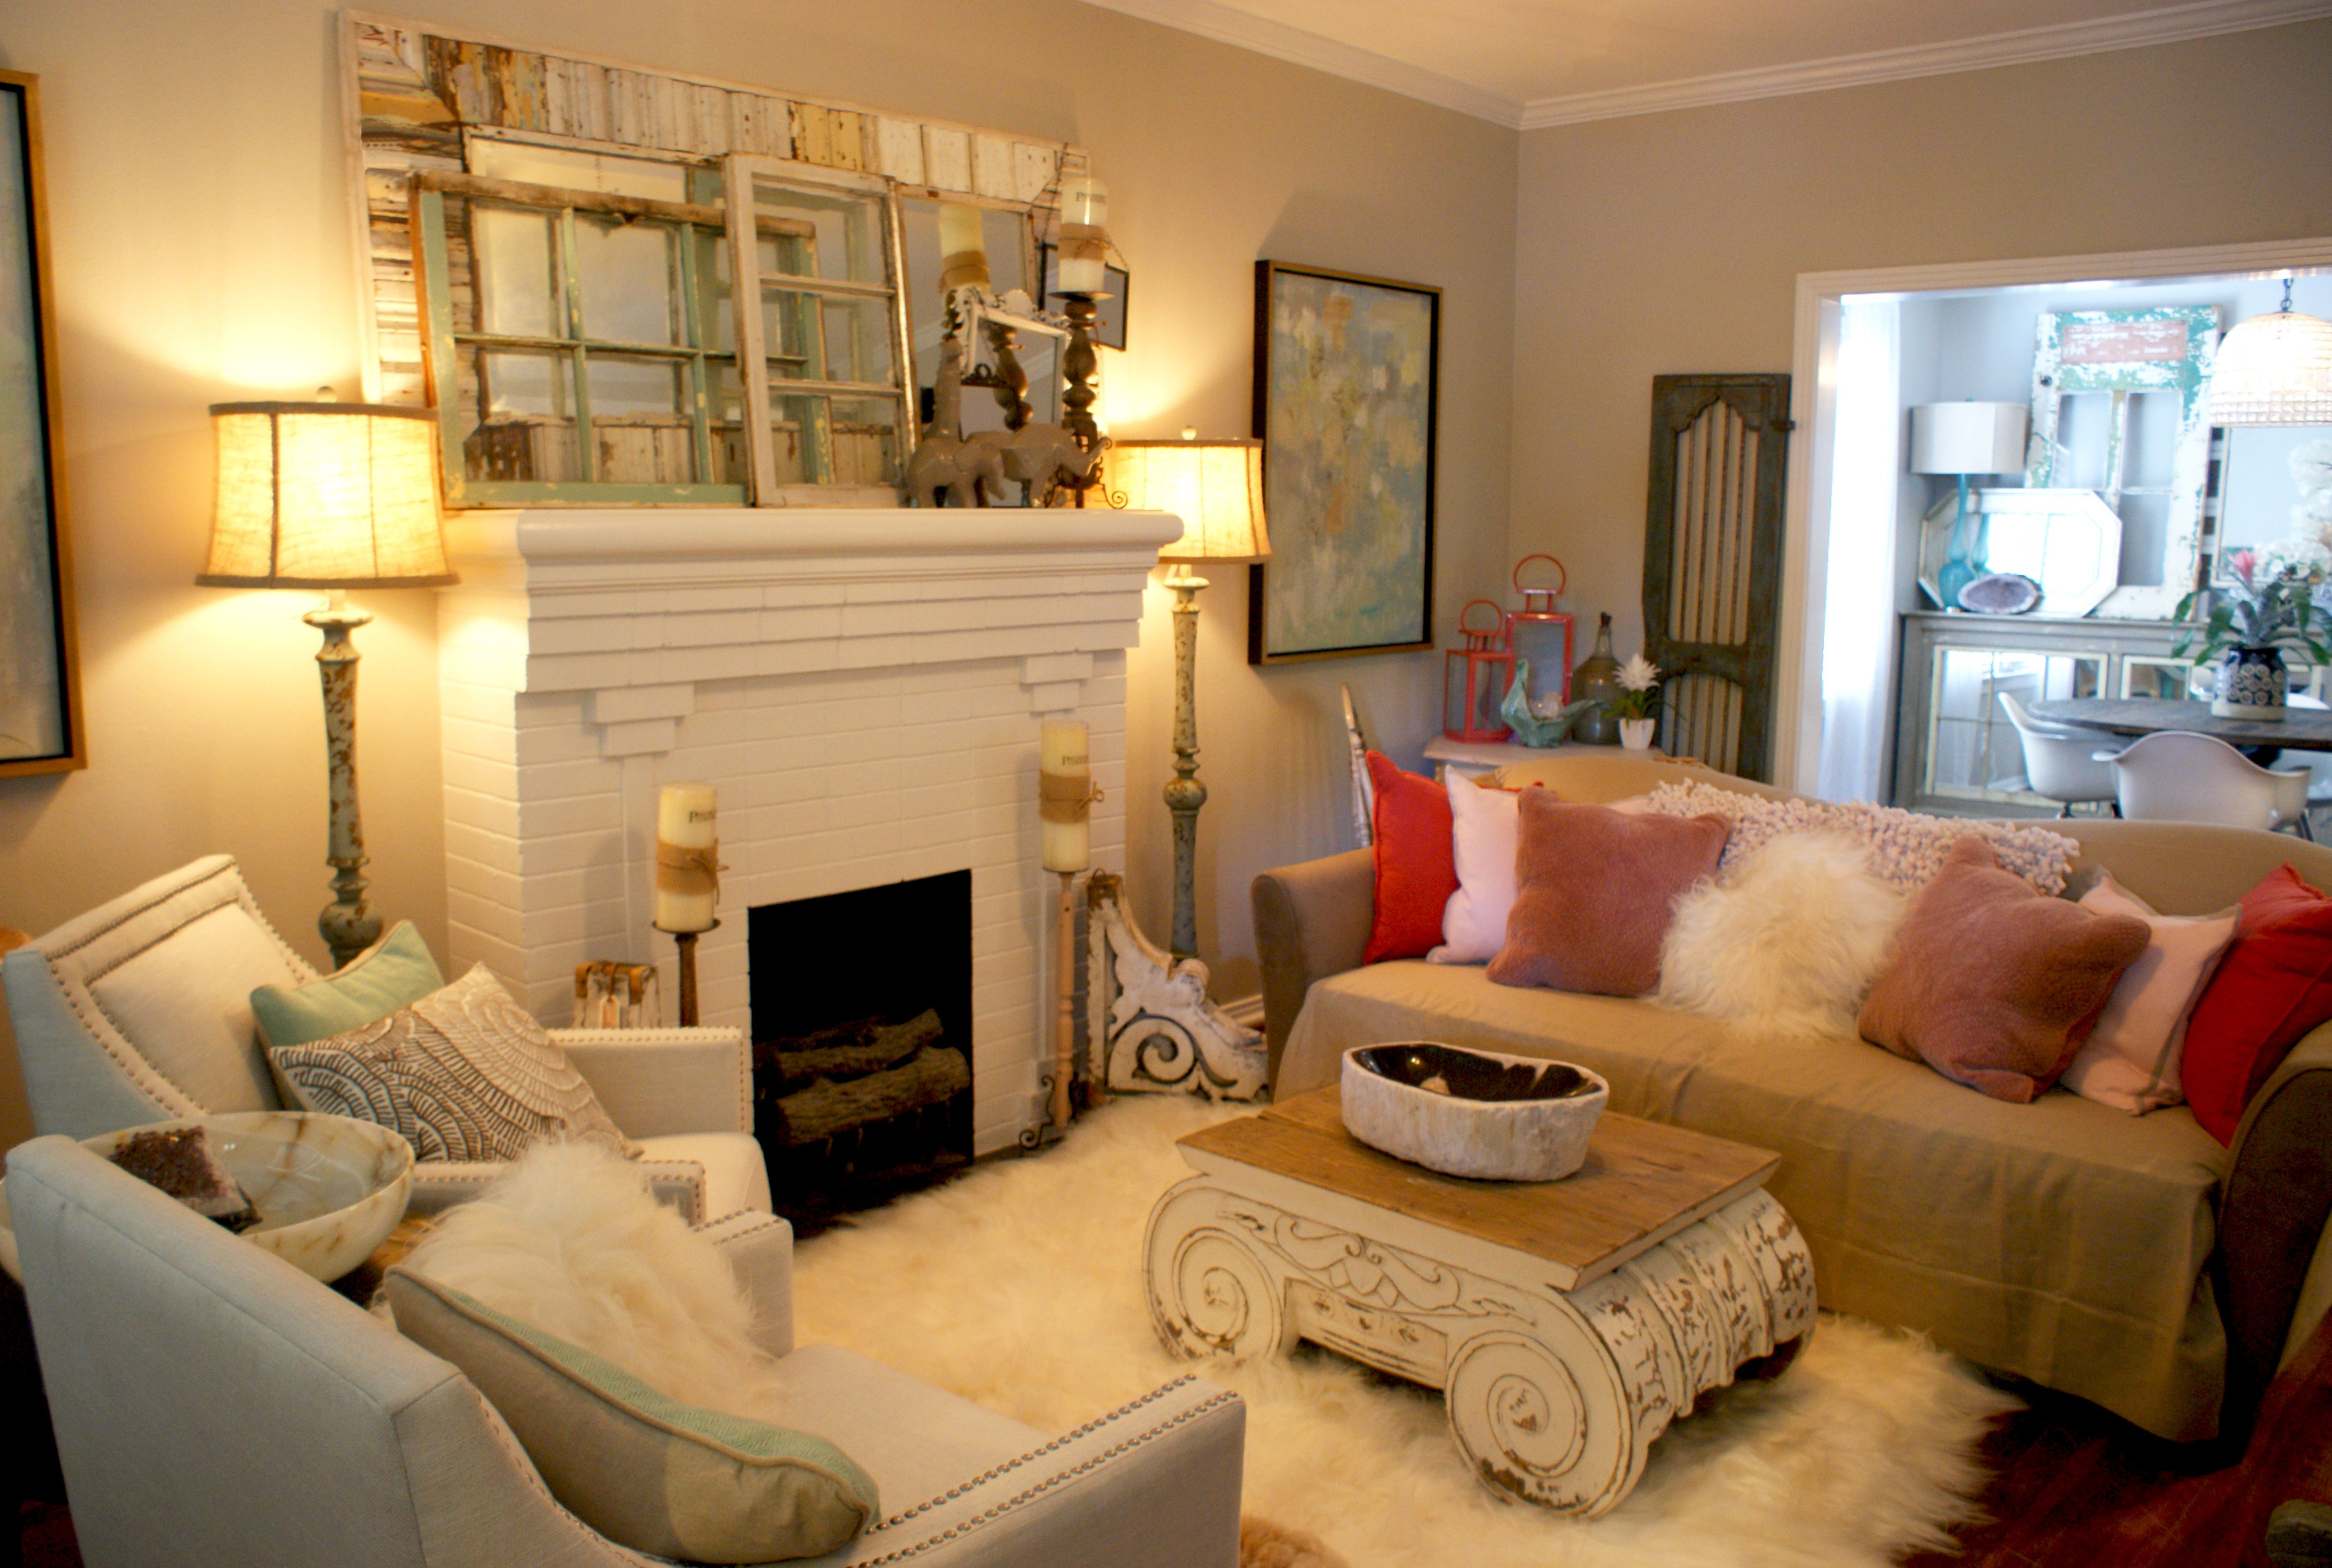 Shabby Chic Home Makeover With Paul Michael Company #paulmichaelcompany  #shabbychic #homemakeover